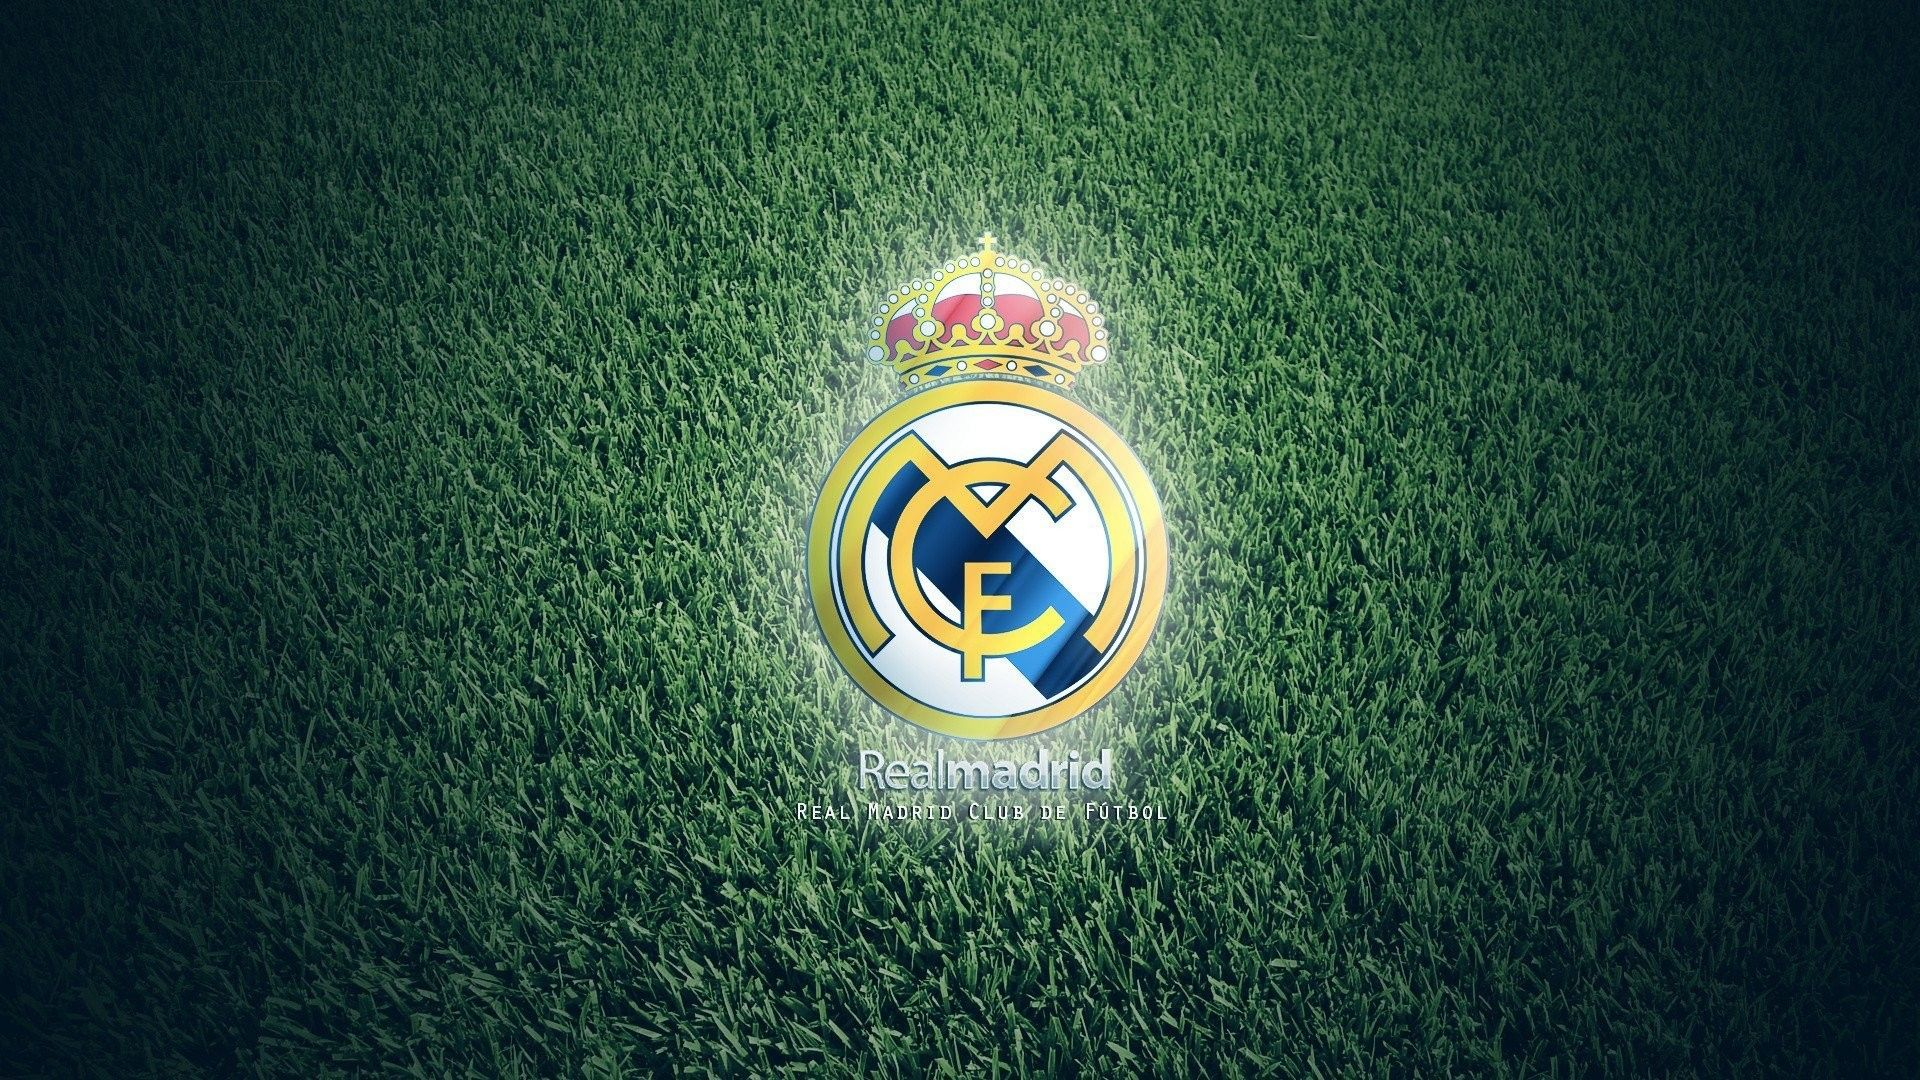 1920x1080 Real Madrid Logo Wallpaper Hd Real Madrid Logo